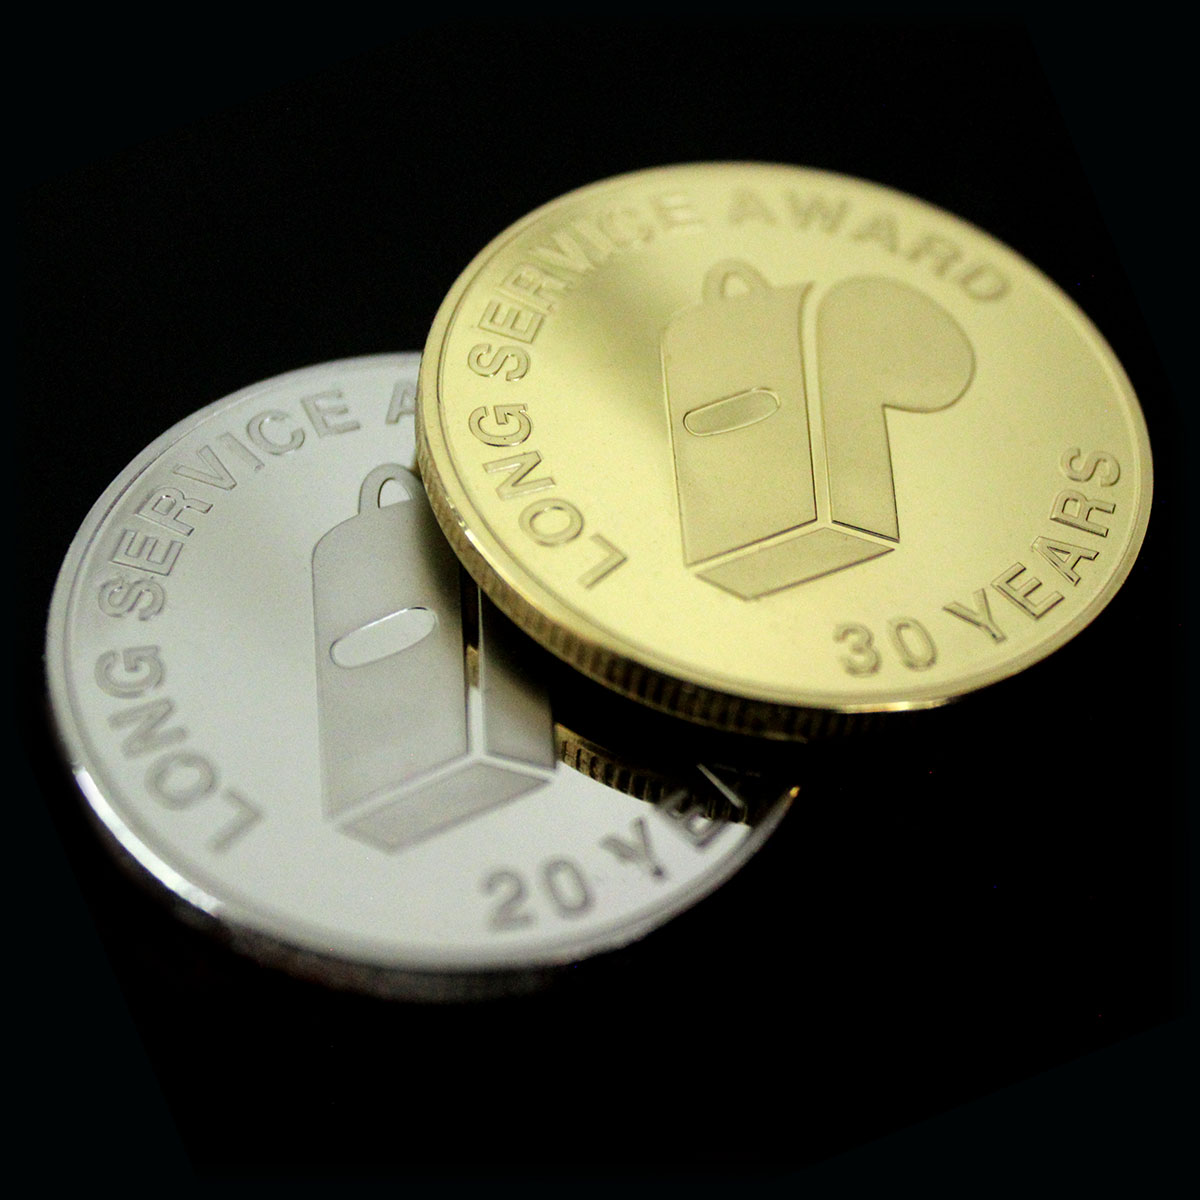 Devon County FA Long Service Commemorative Coins - 38mm Gold Silver Semi-Proof - 20 30 Years - by Medals UK World Cup Blog